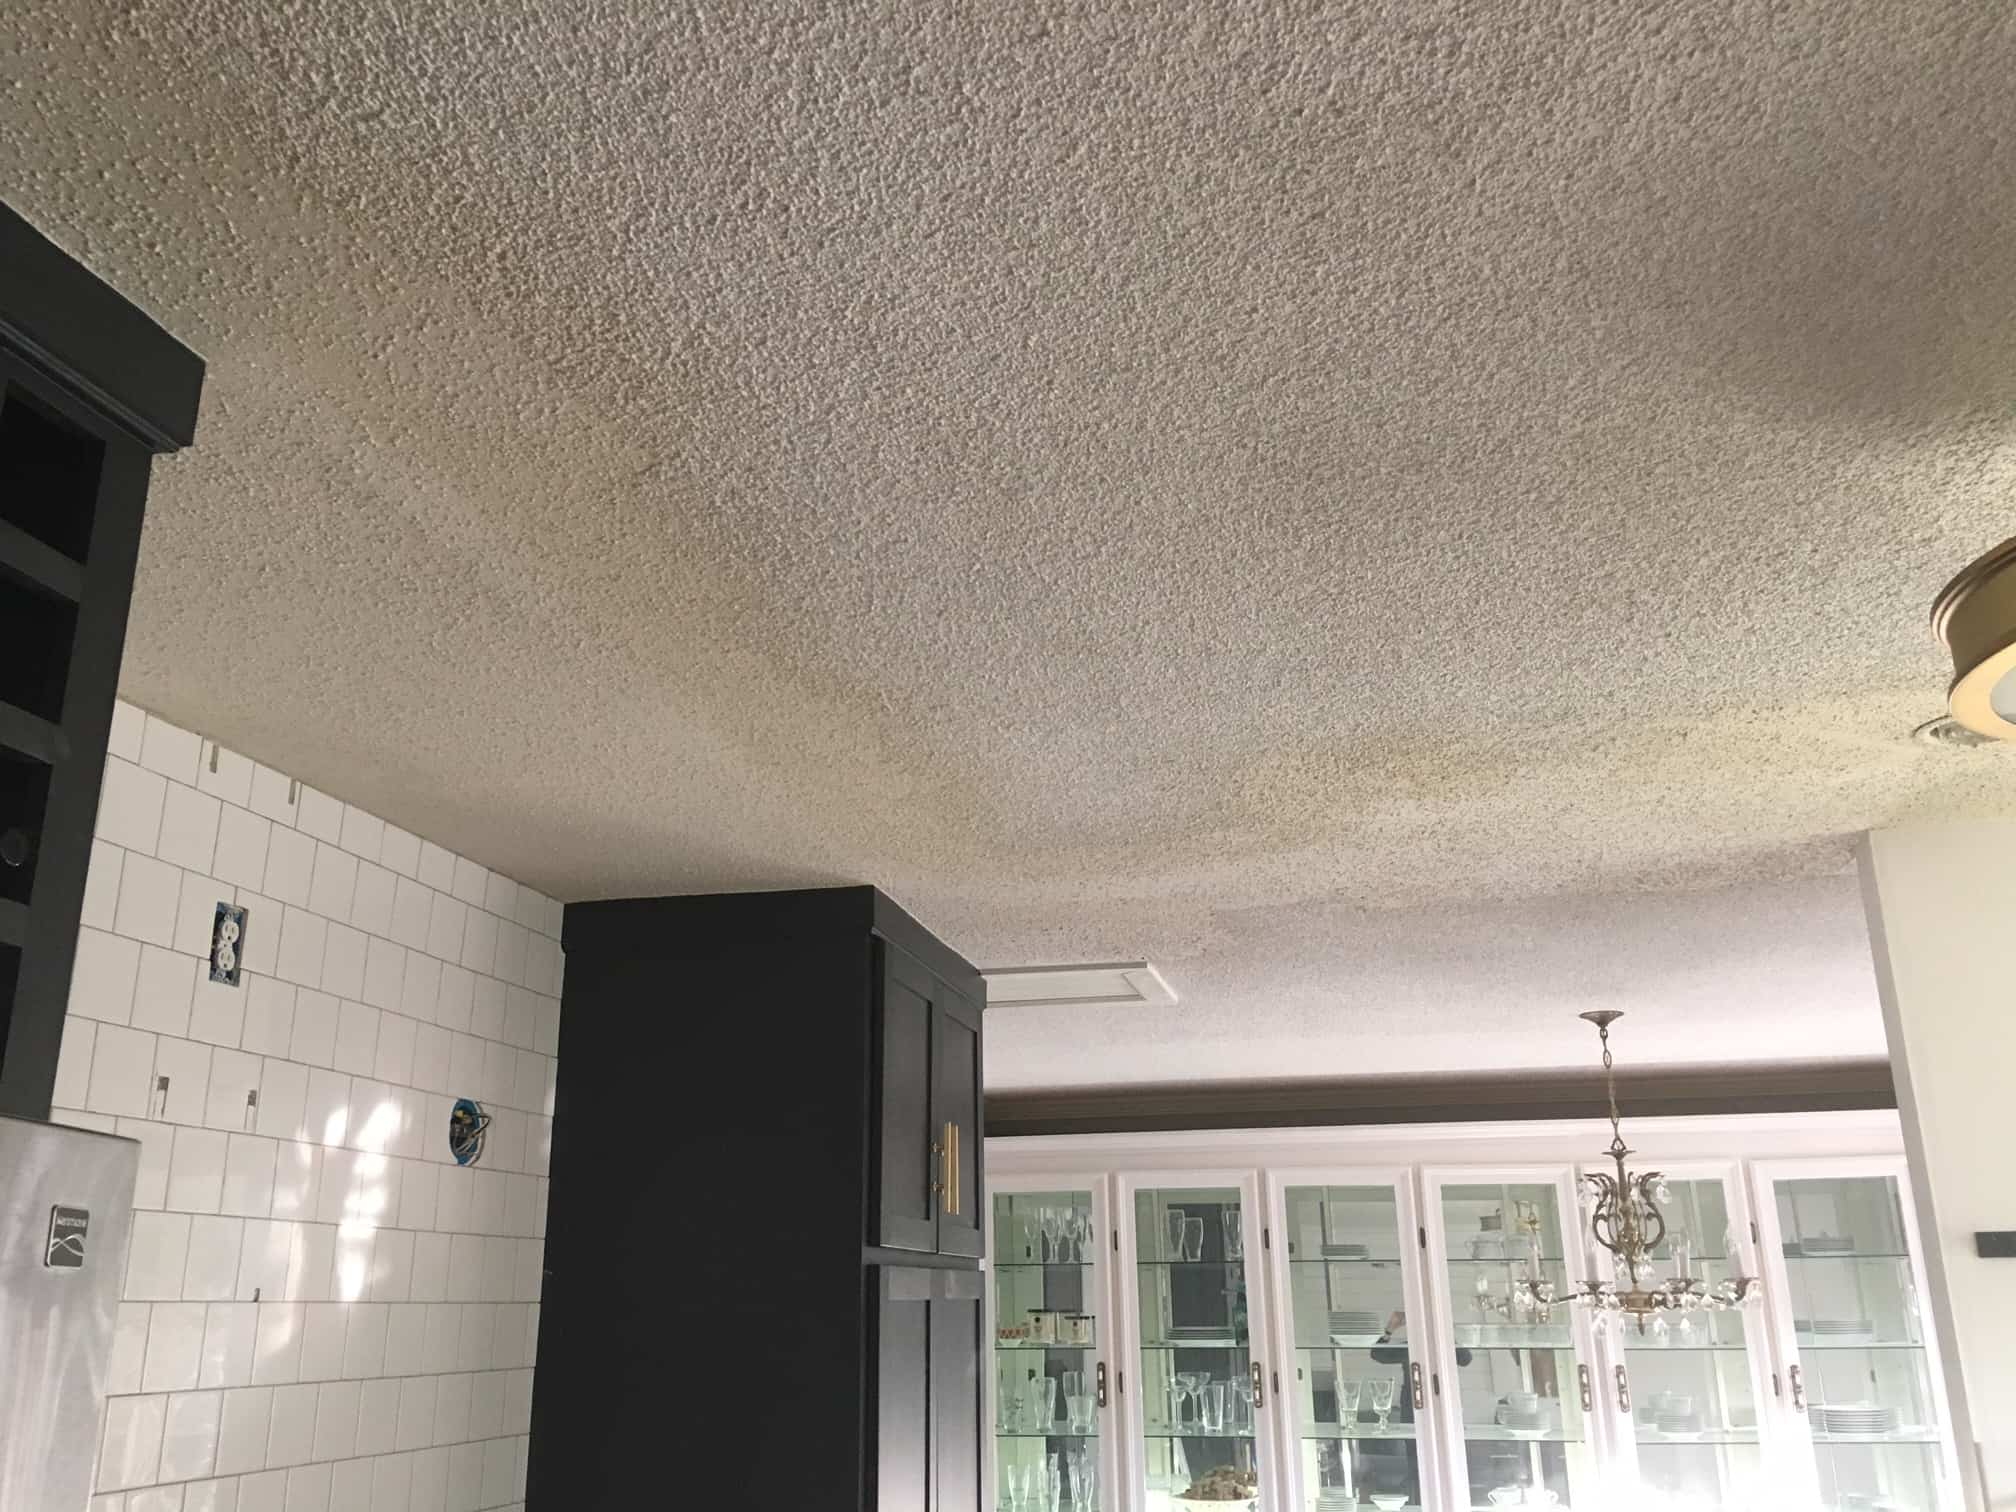 Asbestos removal and drywall install all the details including sprayed popcorn ceiling texture and details on removing asbestos drywall dailygadgetfo Images